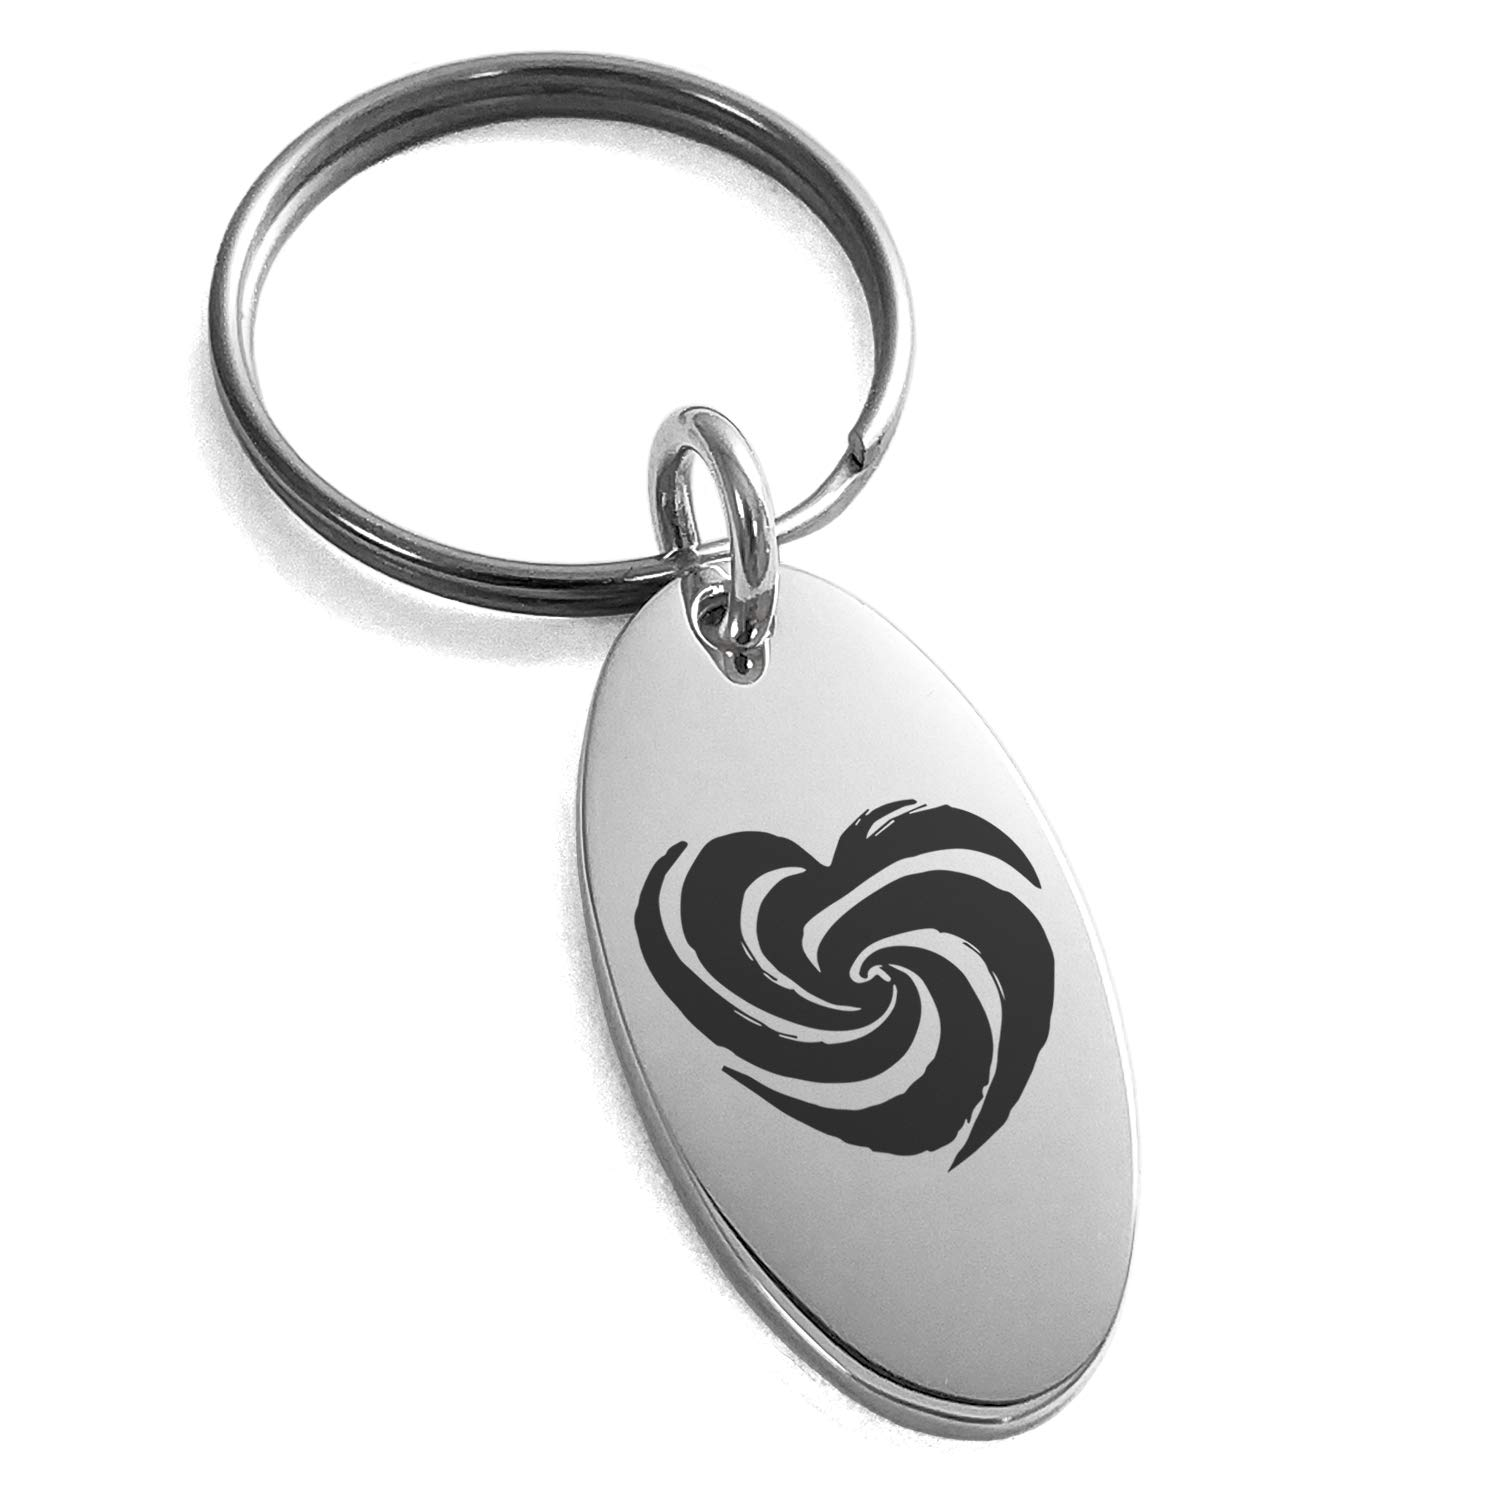 Tioneer Stainless Steel Love Swirl Heart Engraved Small Oval Charm Keychain Keyring